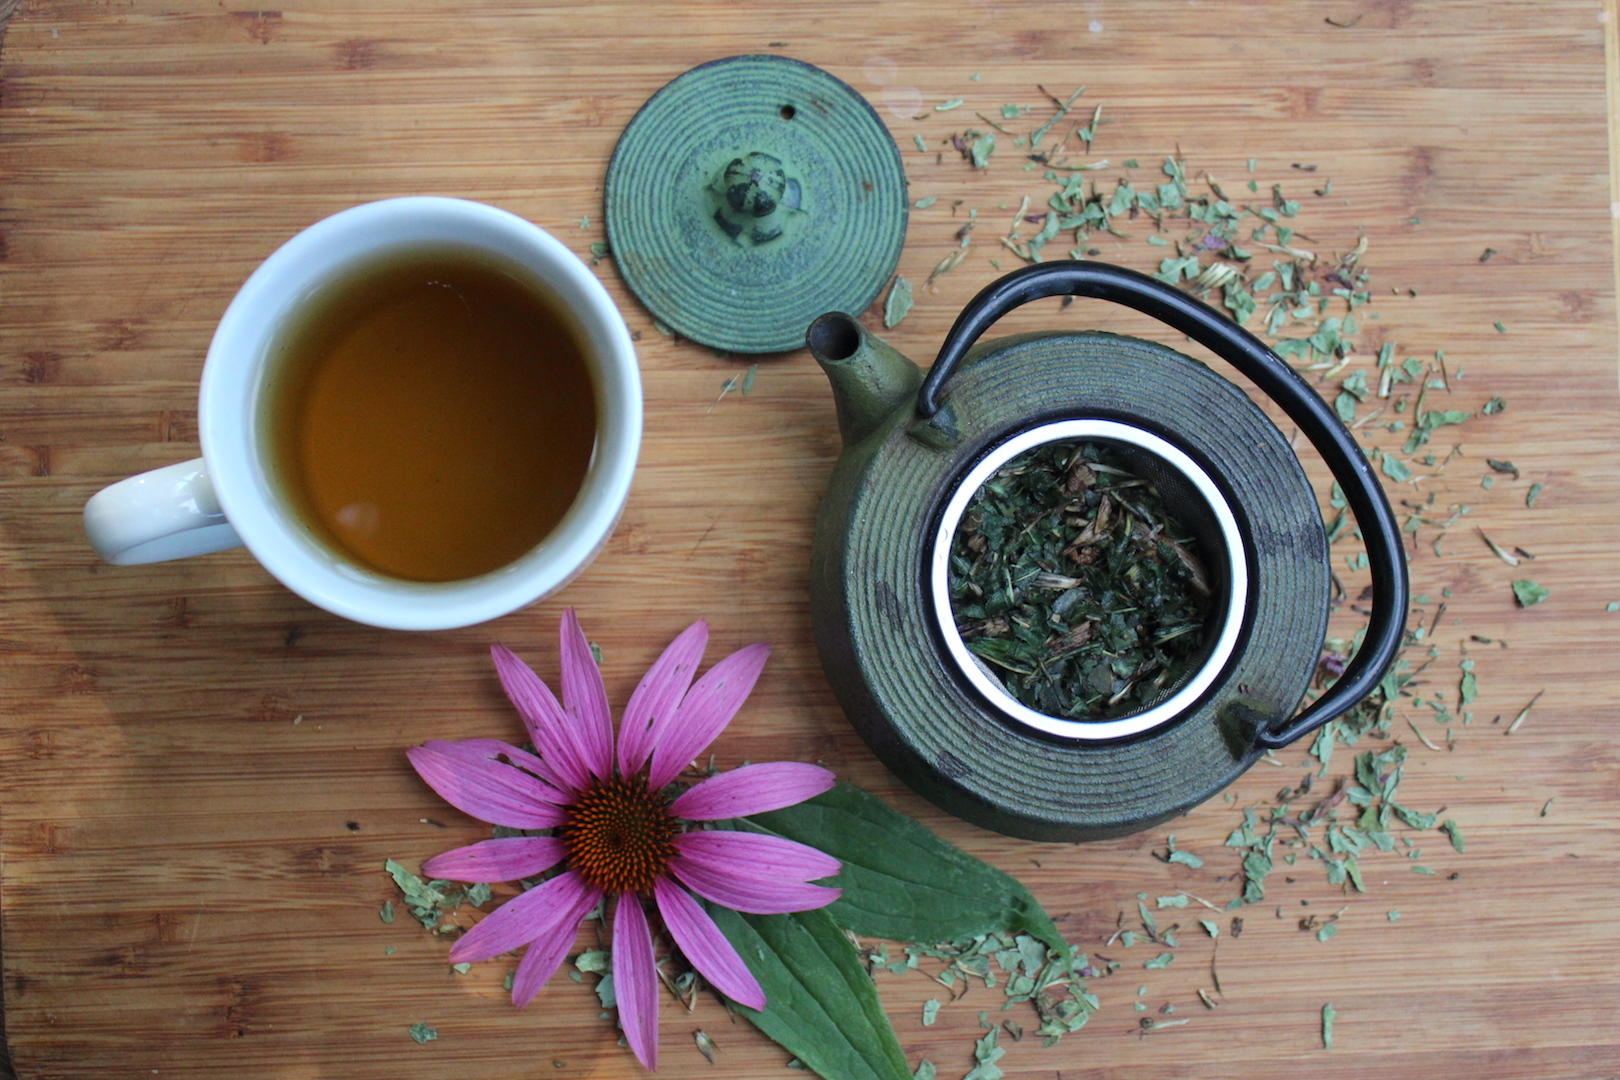 How to Make the Perfect Cup of Echinacea Tea